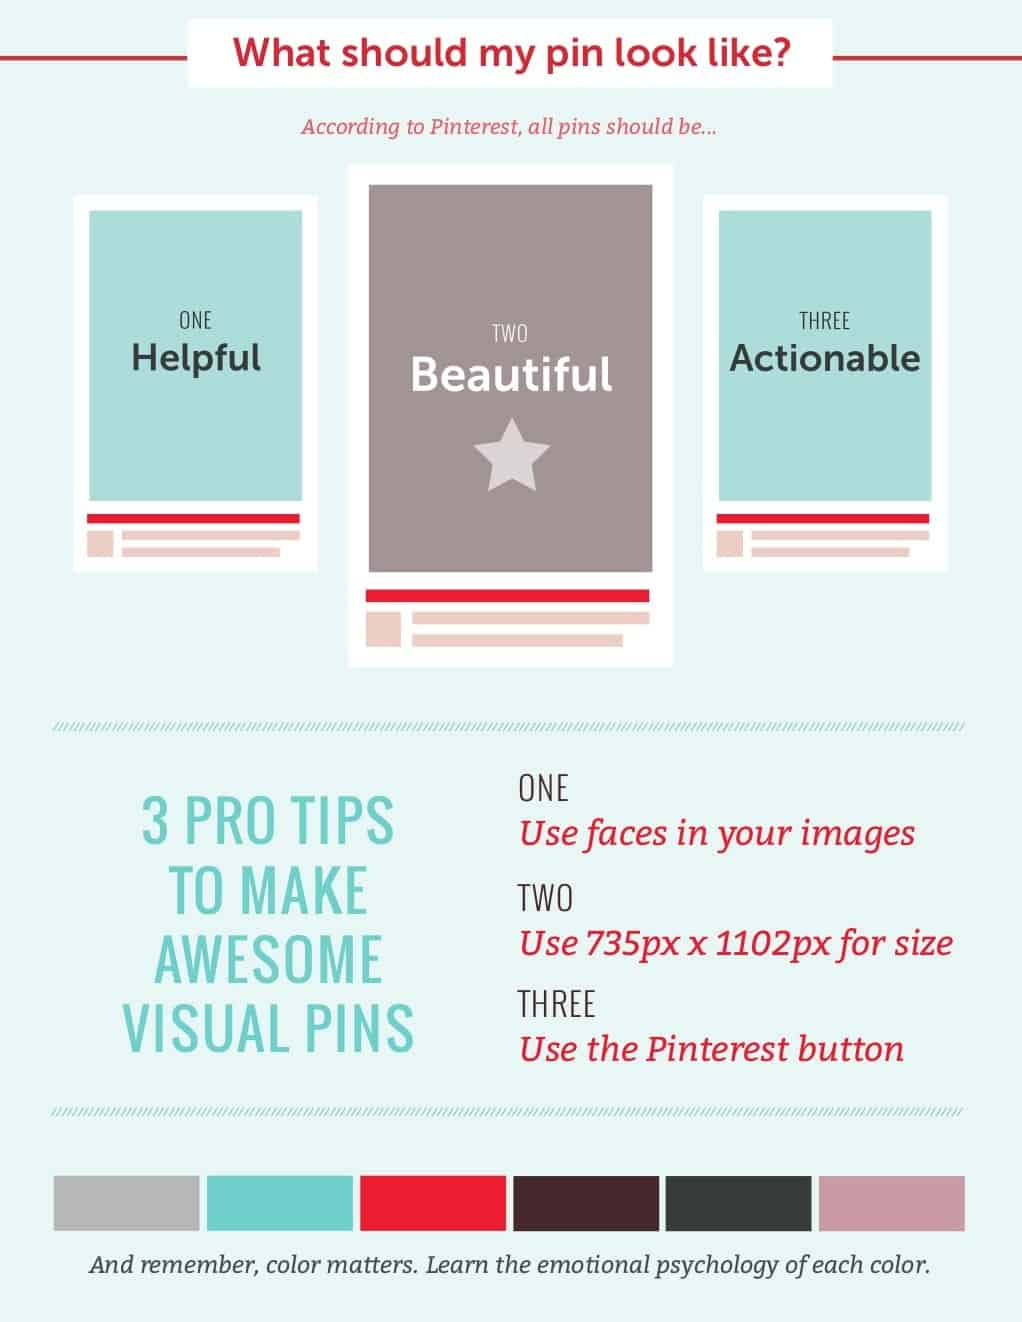 pinterest-infographic-marketing-3